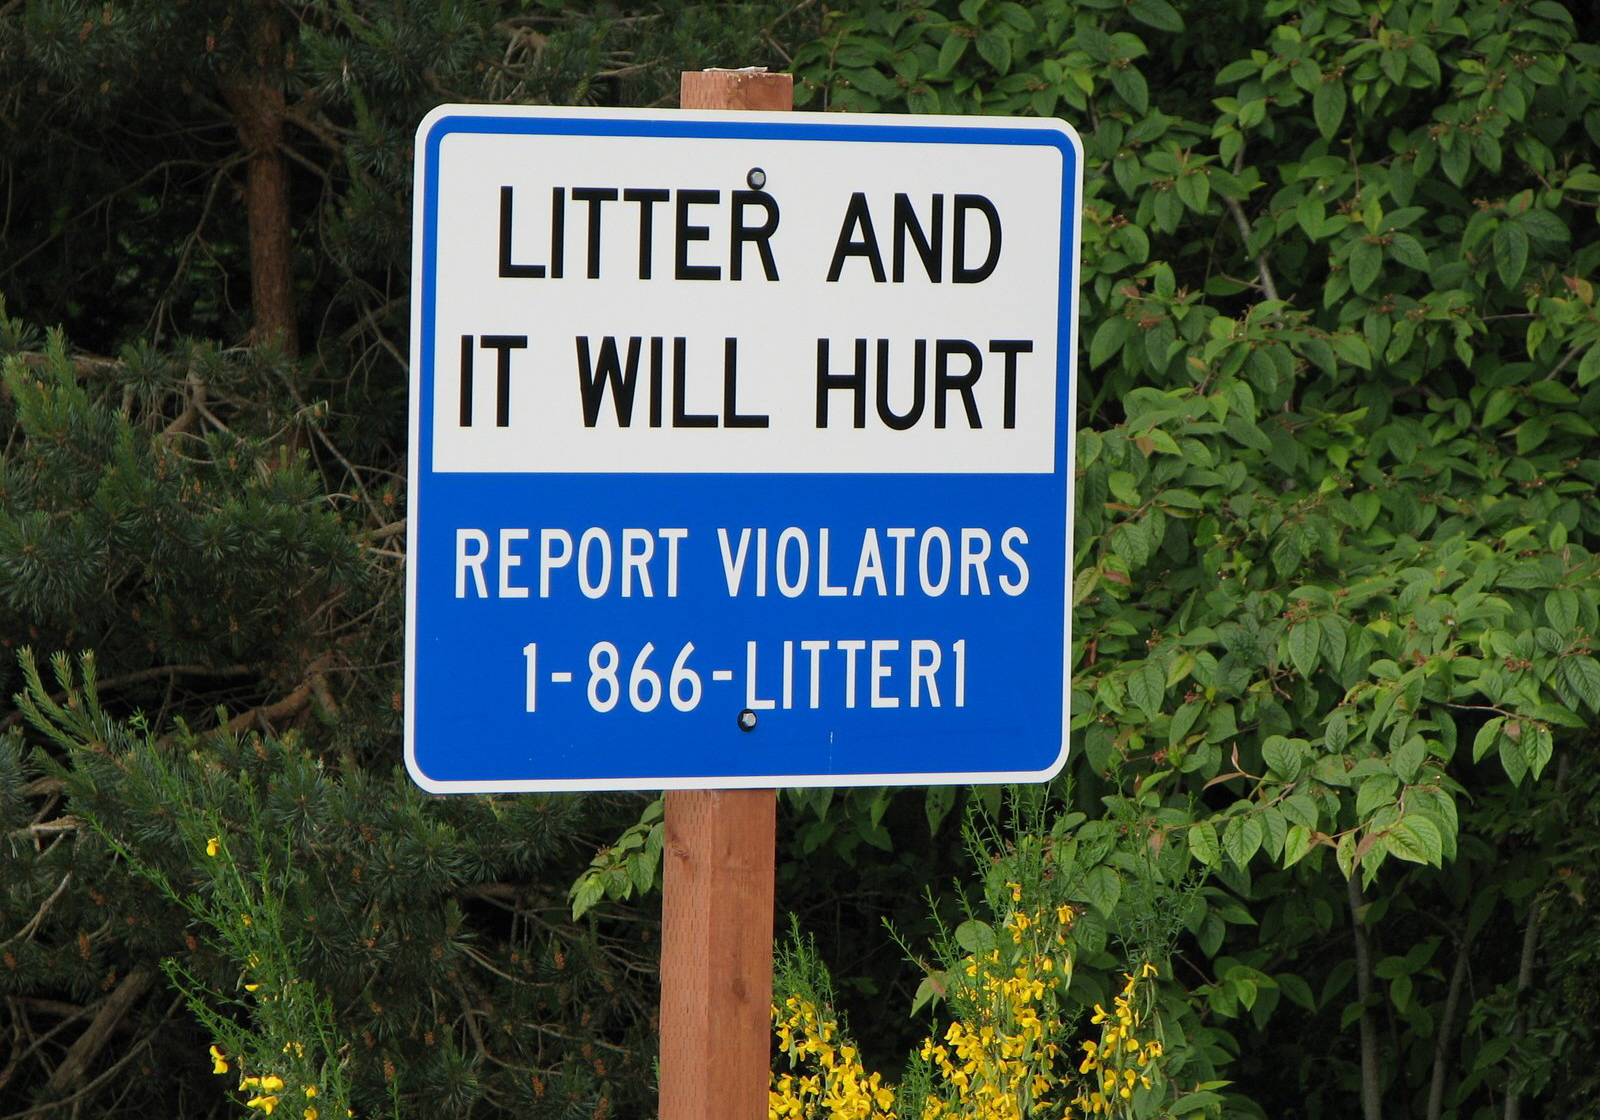 Sign - Litter and it will hurt